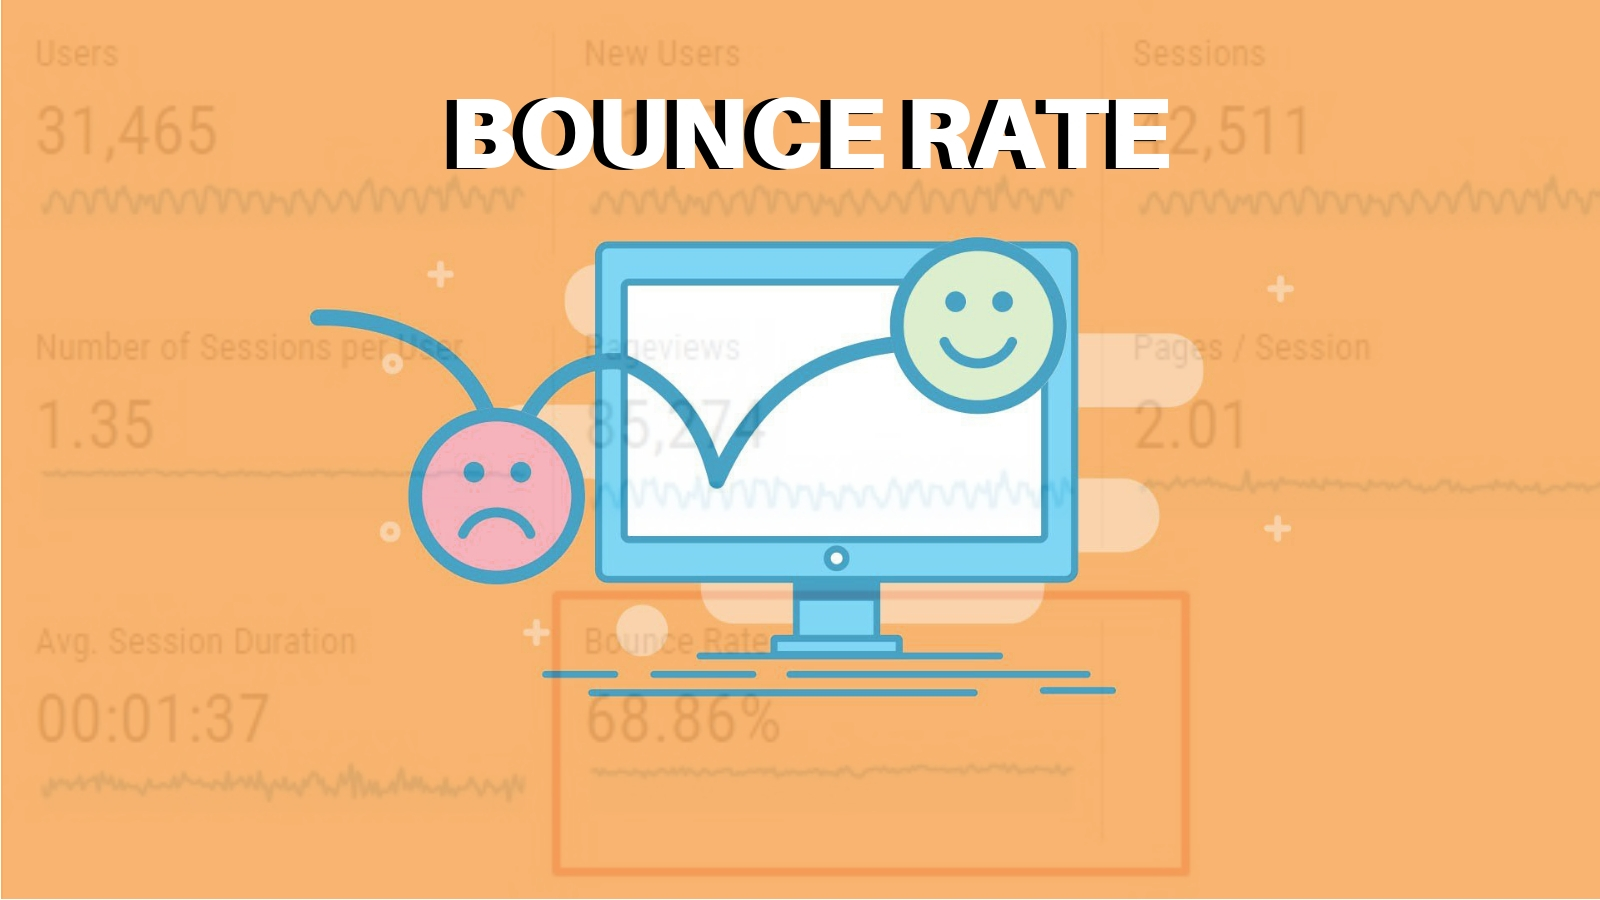 How to measure bounce rate